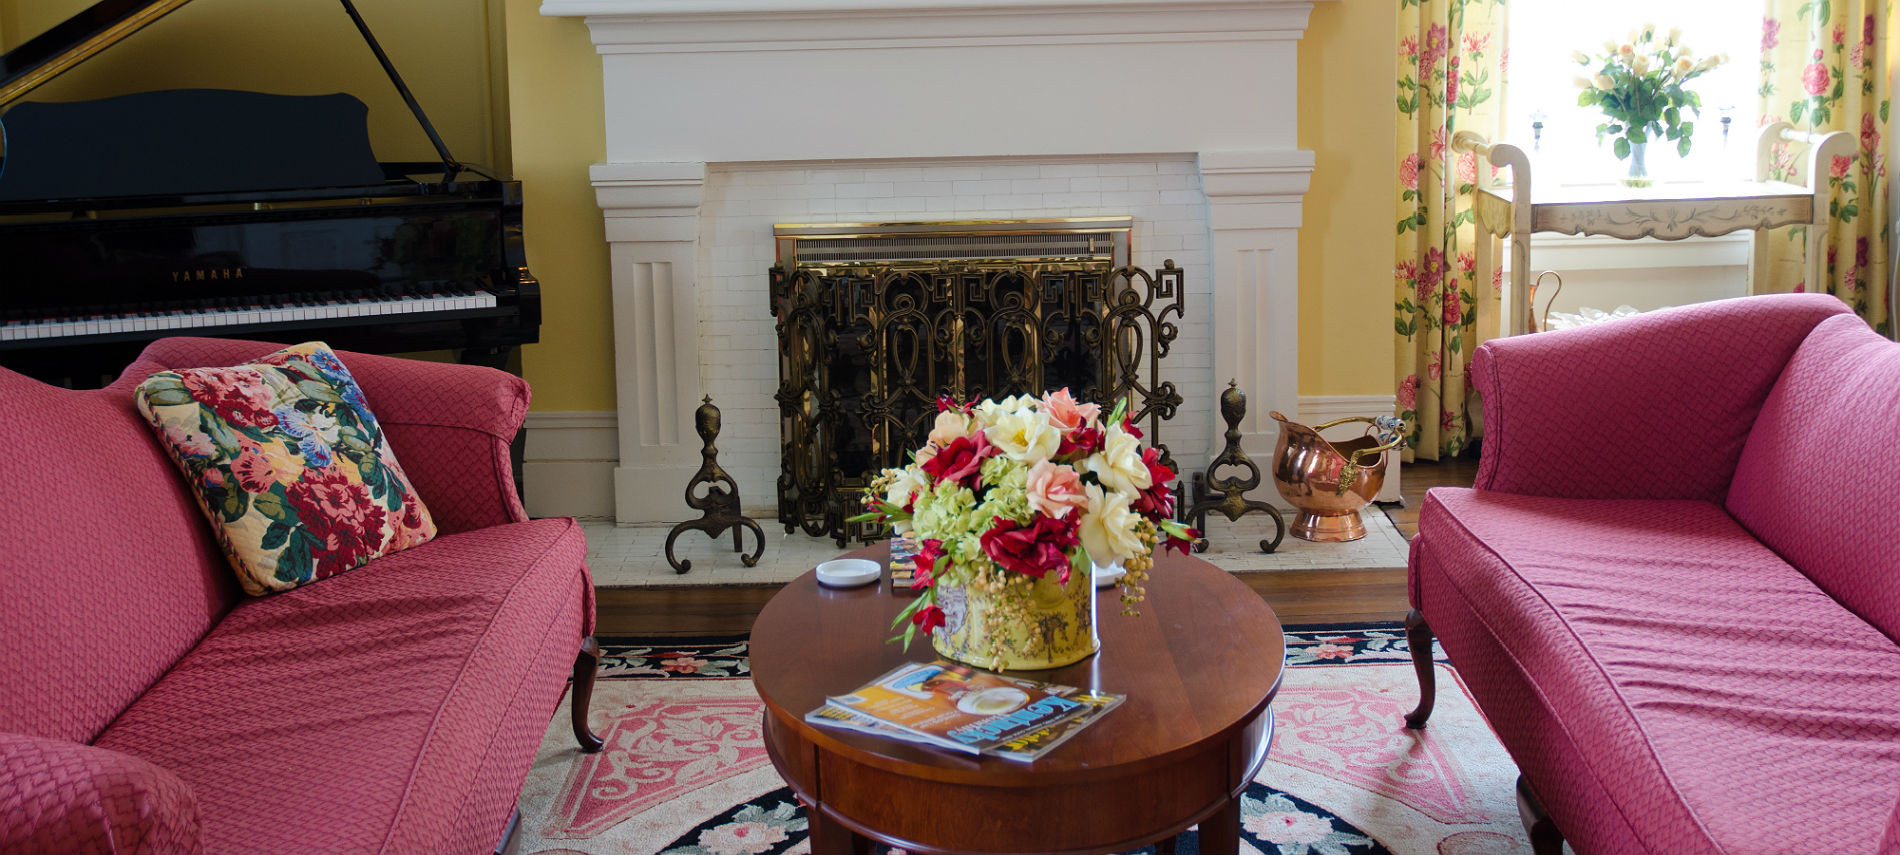 Parlor with yellow walls, white fireplace, two scarlet love seats facing each other, wooden coffee table and baby grand piano